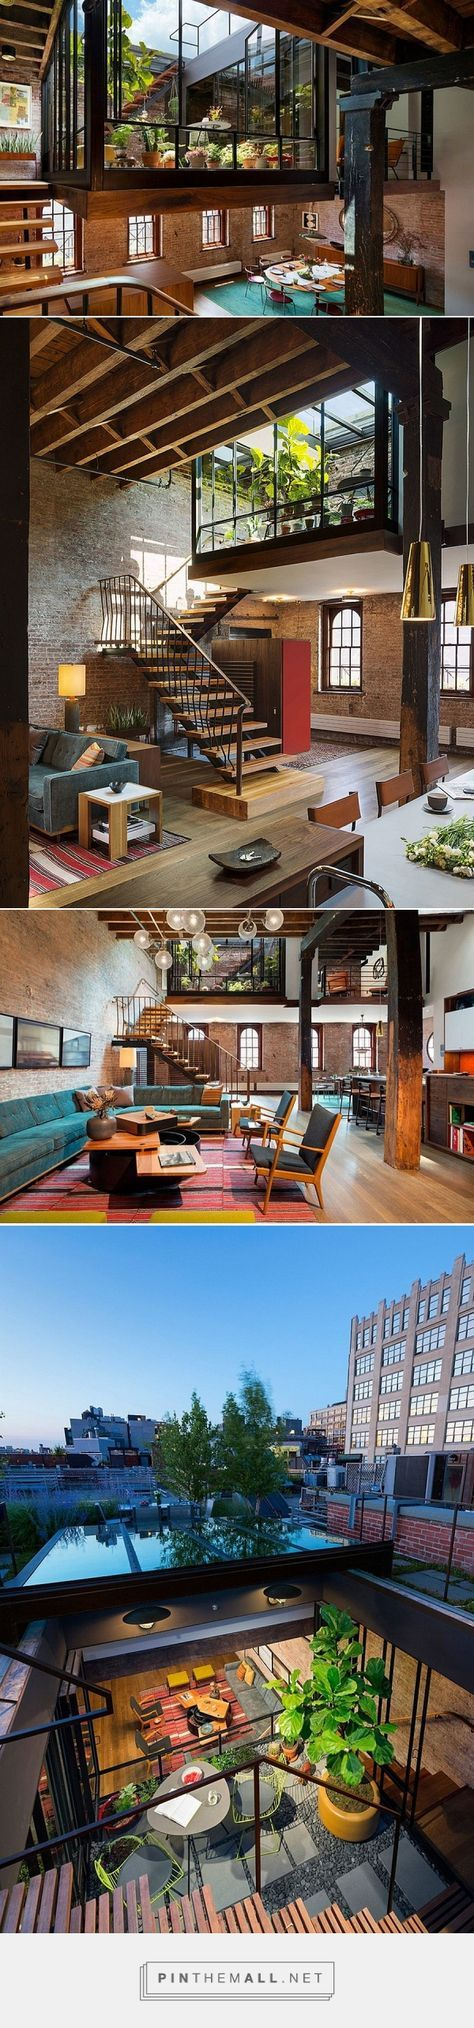 Old Caviar Warehouse Converted into a Sensational NYC Loft - garden space dropped down into the living space